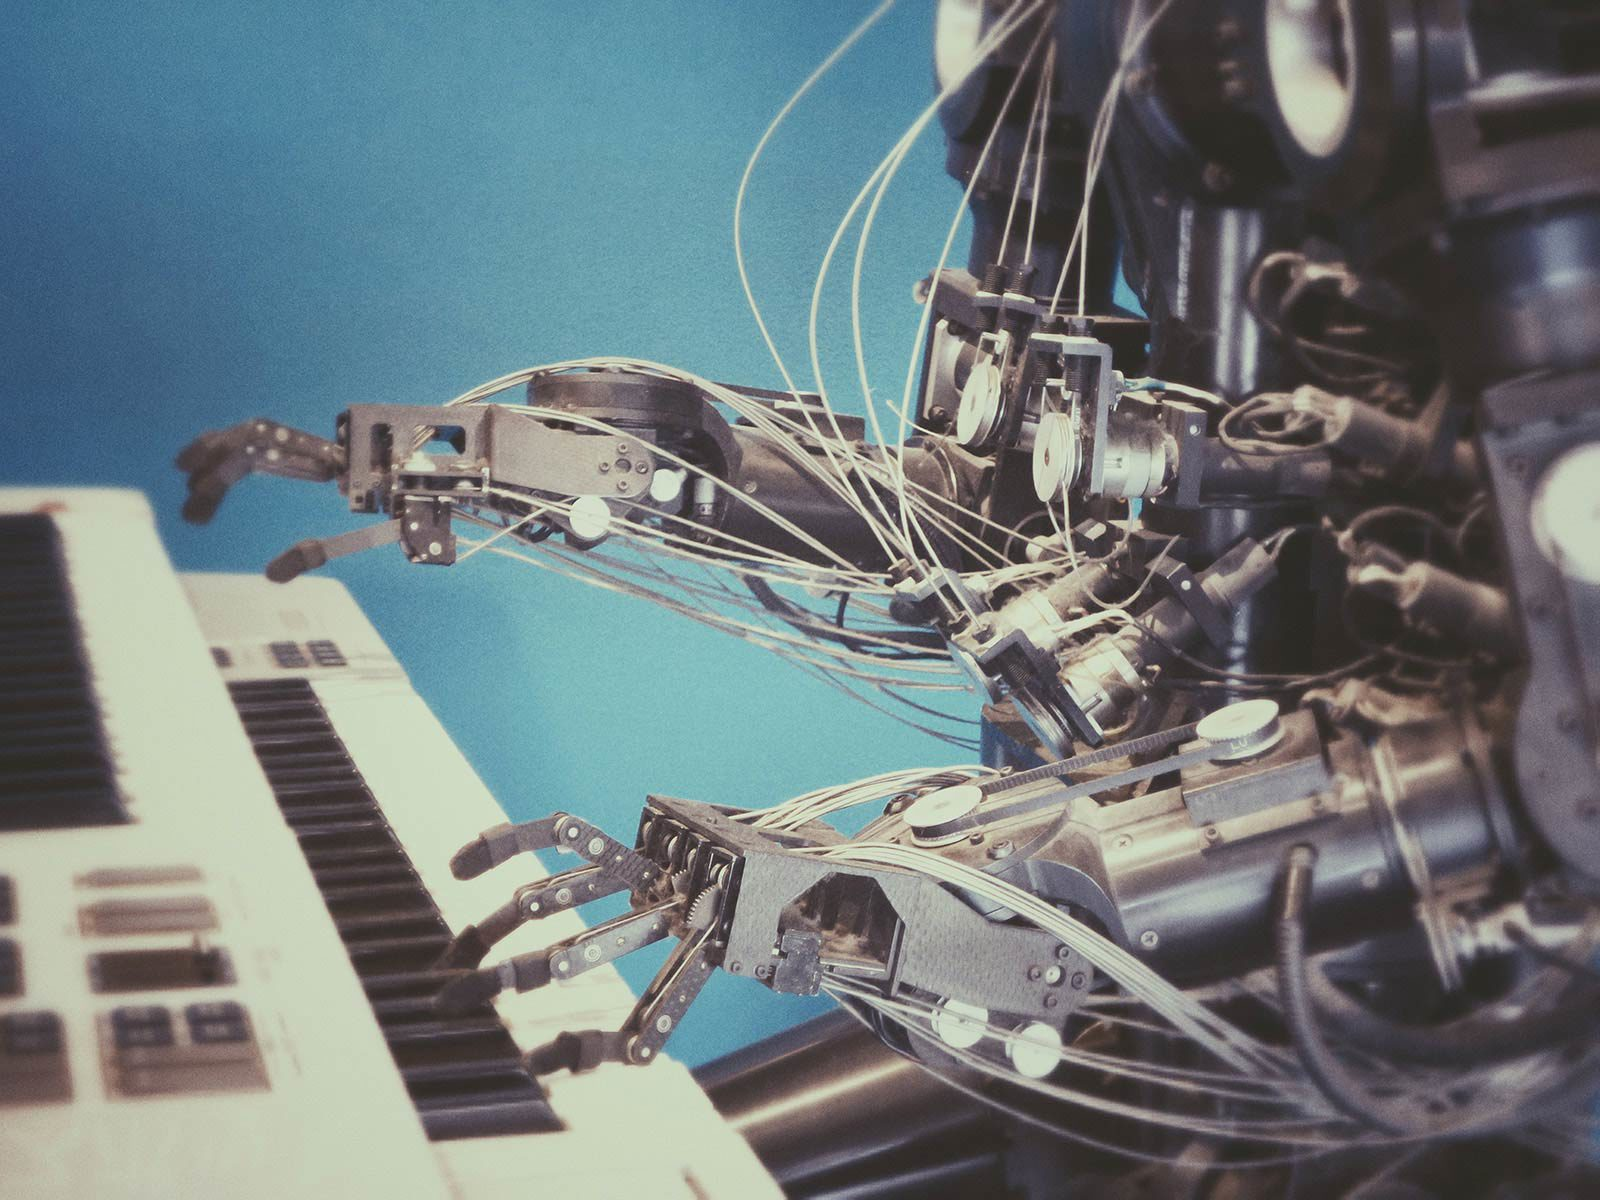 Robot playing keyboard against blue background.